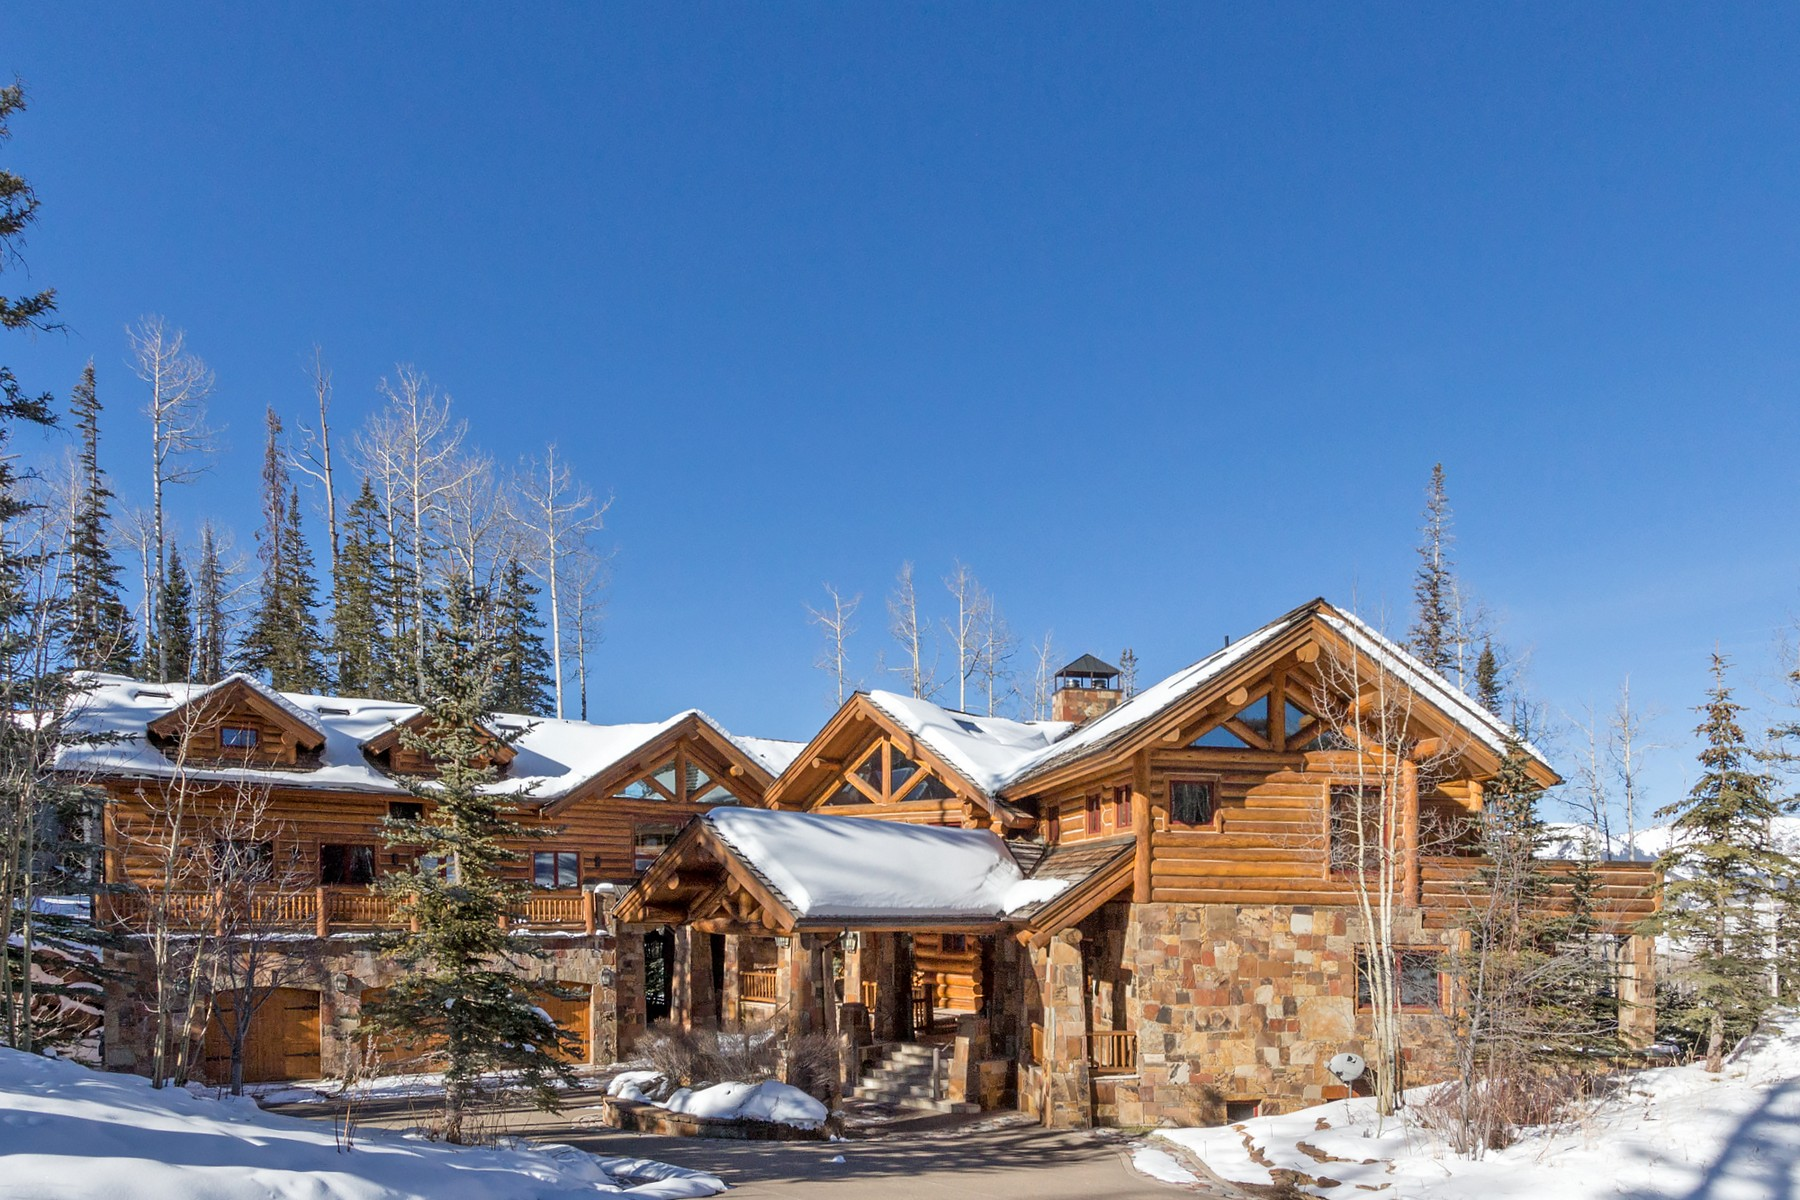 Single Family Home for Sale at 133 Polecat Lane Telluride, Colorado, 81435 United States